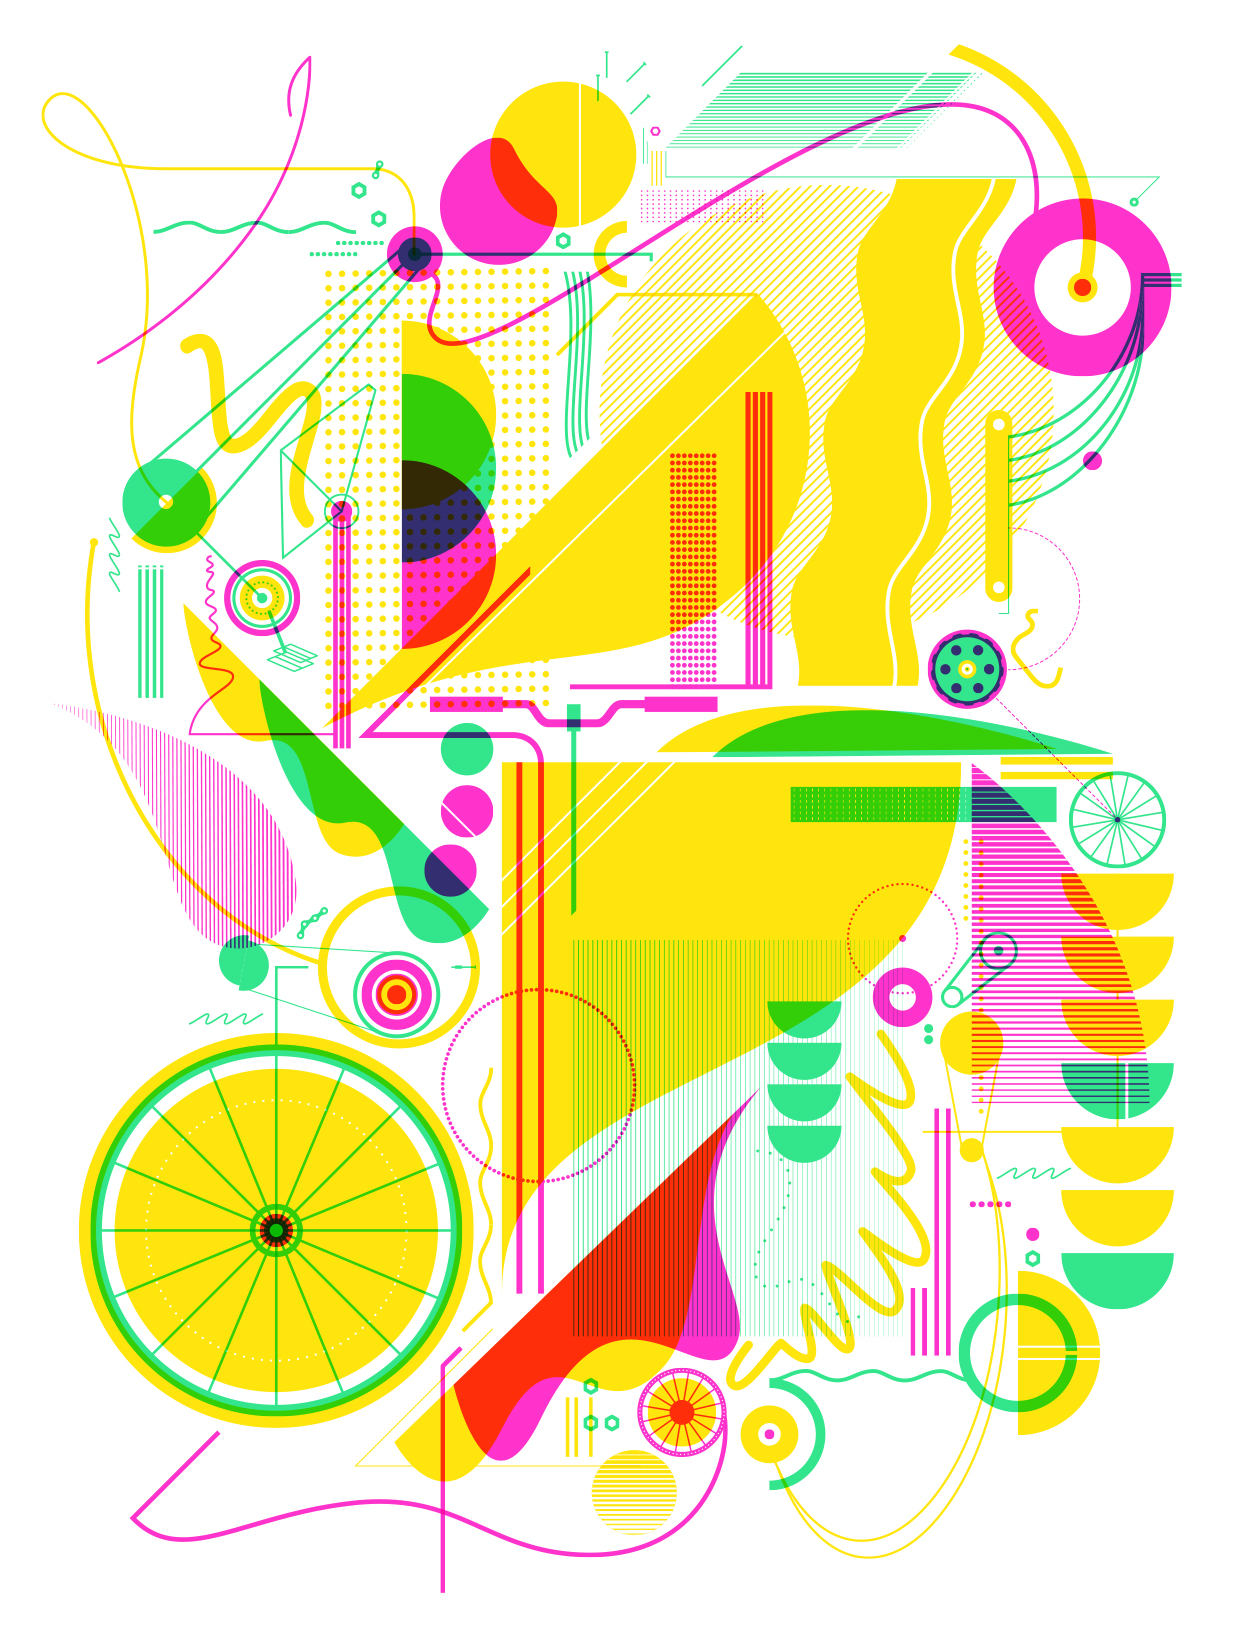 Artcrank-final-layers.jpg